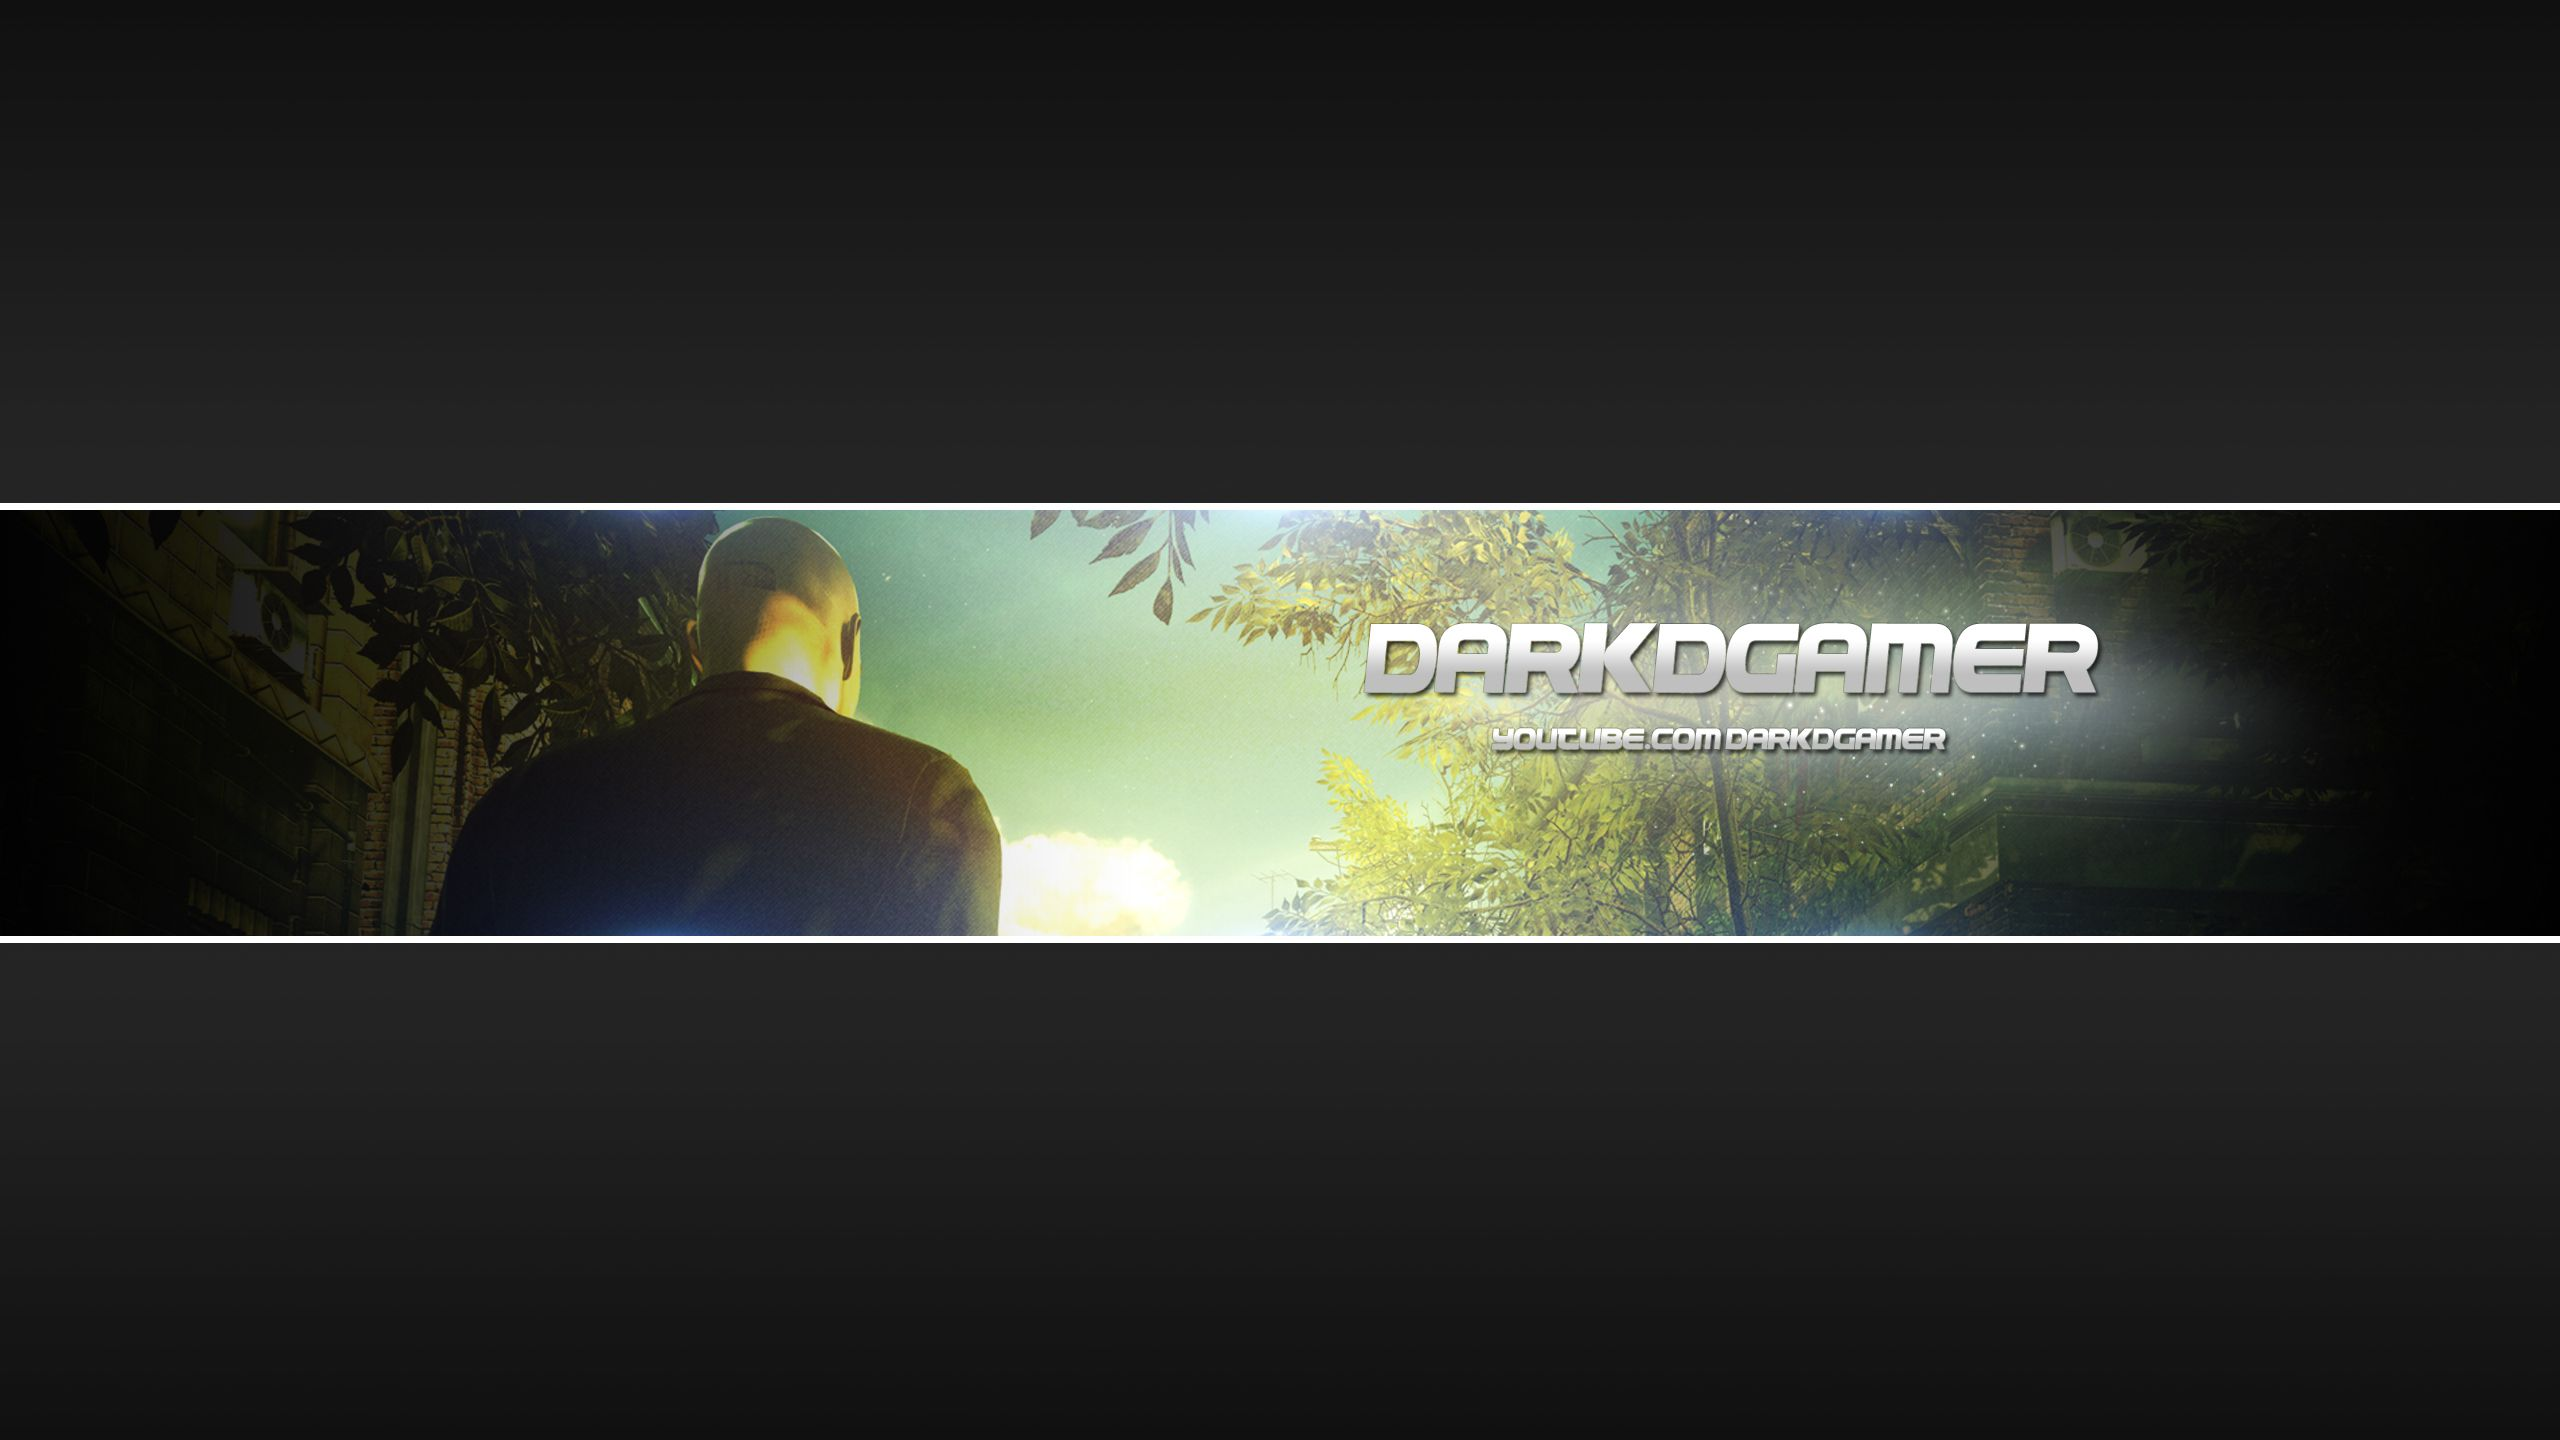 Hitman Absolution Youtube Banner Youtube Banners Movie Posters Movies